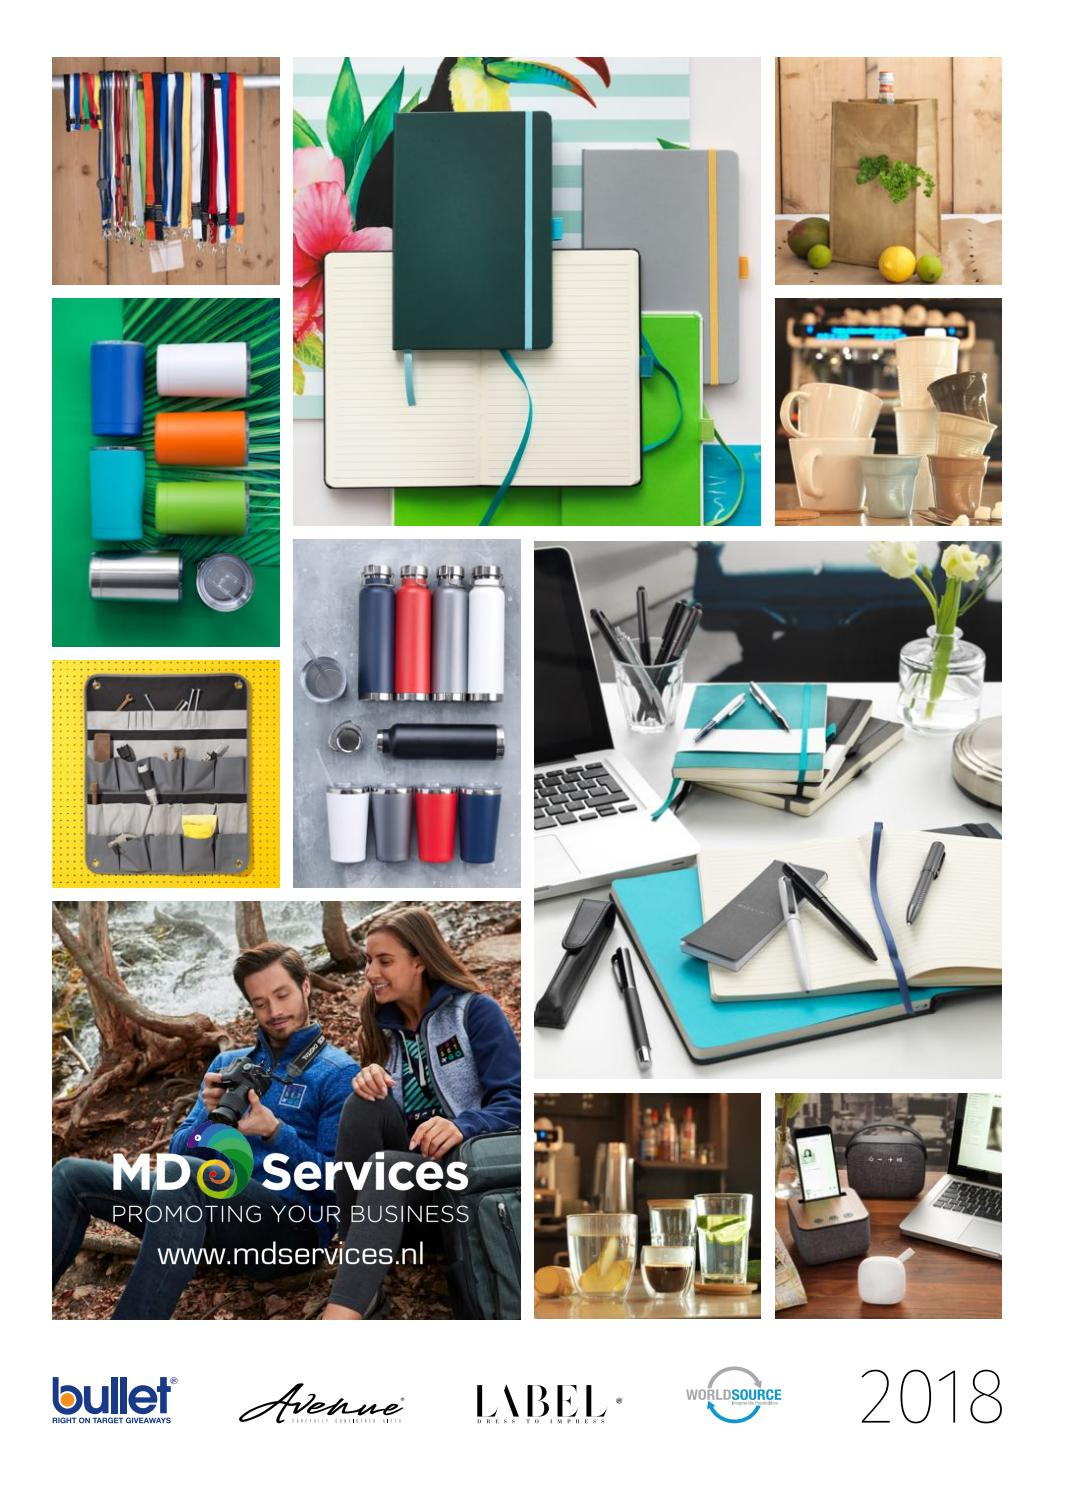 The Gift Collection mdservices nl by MD Services BV - Promoting Your